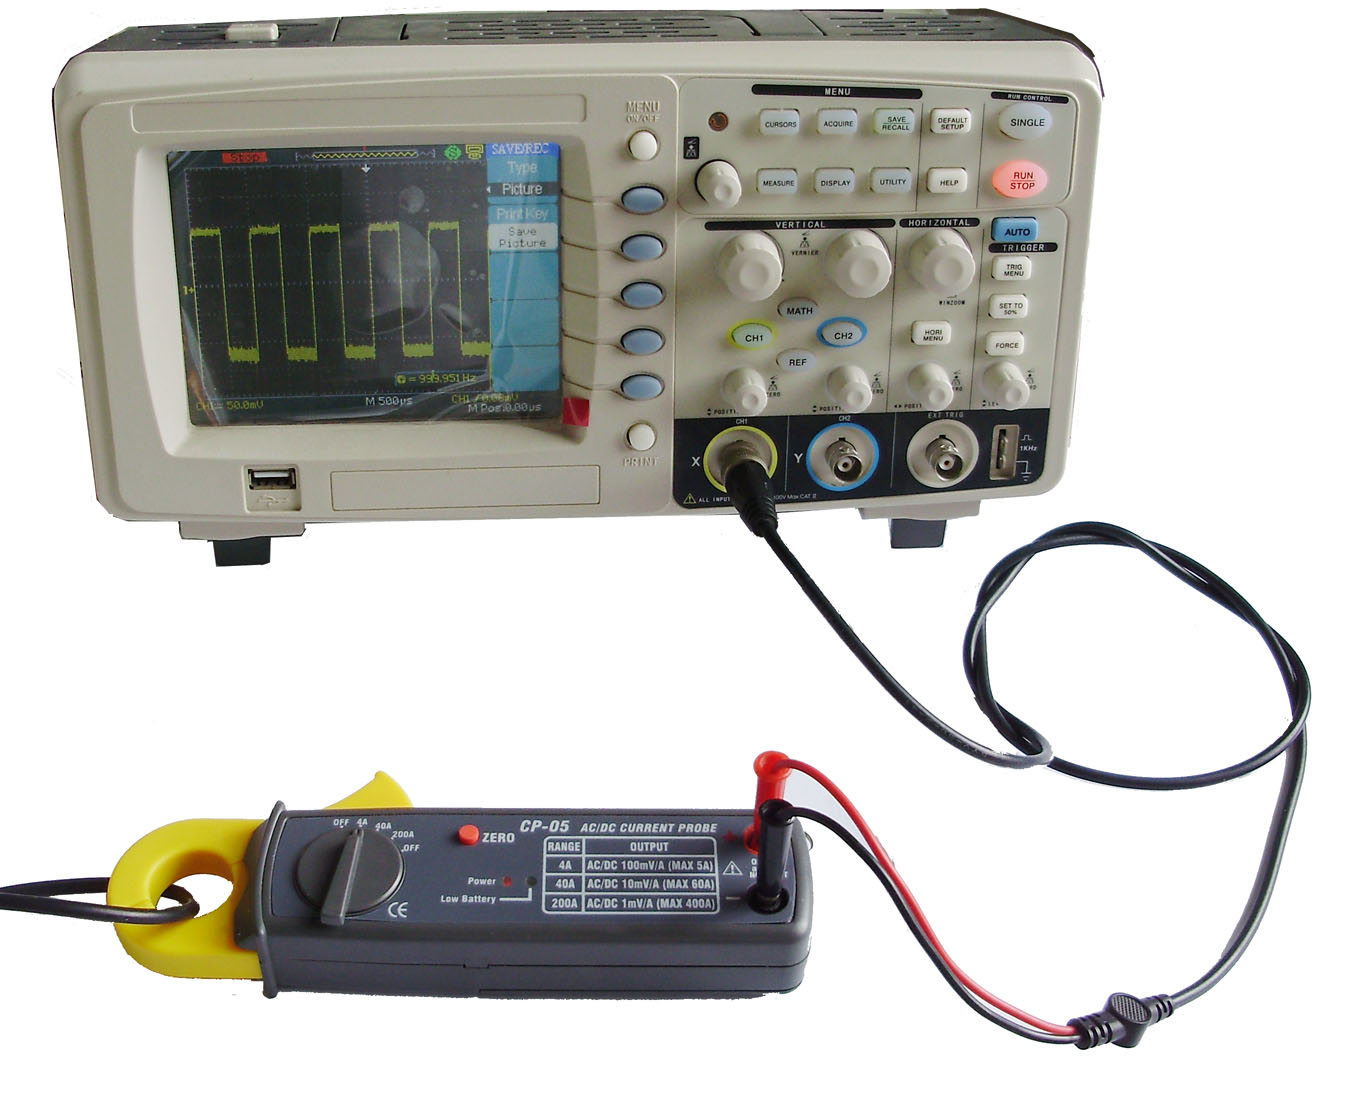 Oscilloscope Current Probe : Cp dc ac clamp current probe a khz tr o us mm